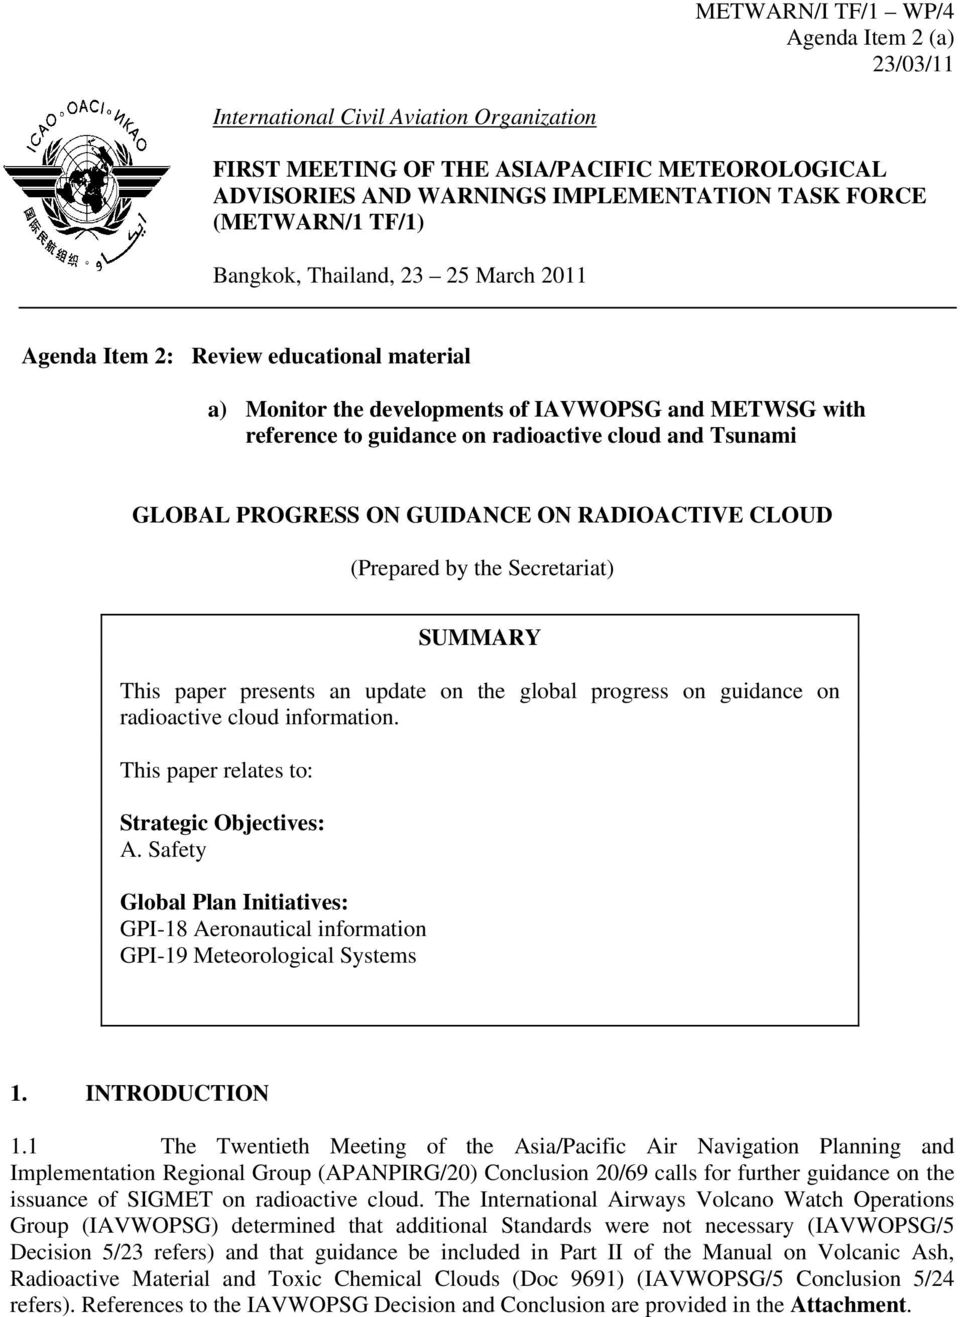 GUDANCE ON RADOACTVE CLOUD (Prepared by the Secretariat) SUMMARY This paper presents an update on the global progress on guidance on radioactive cloud information.